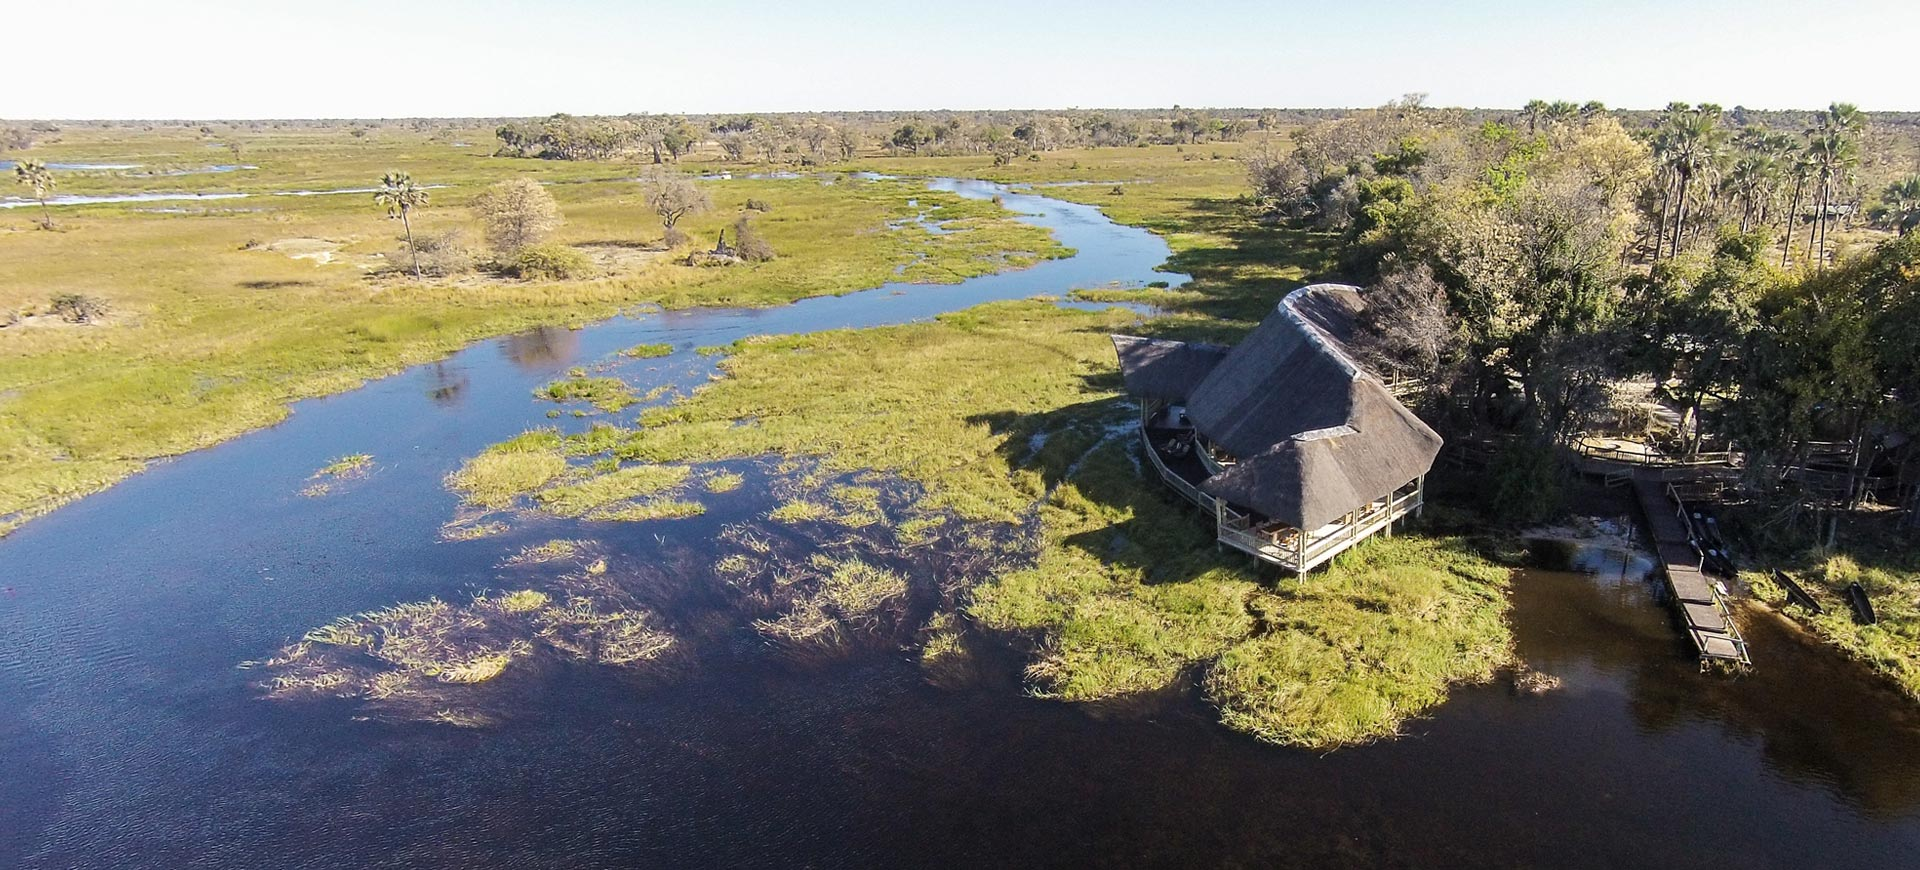 Okavango Delta Moremi Crossing Lodge